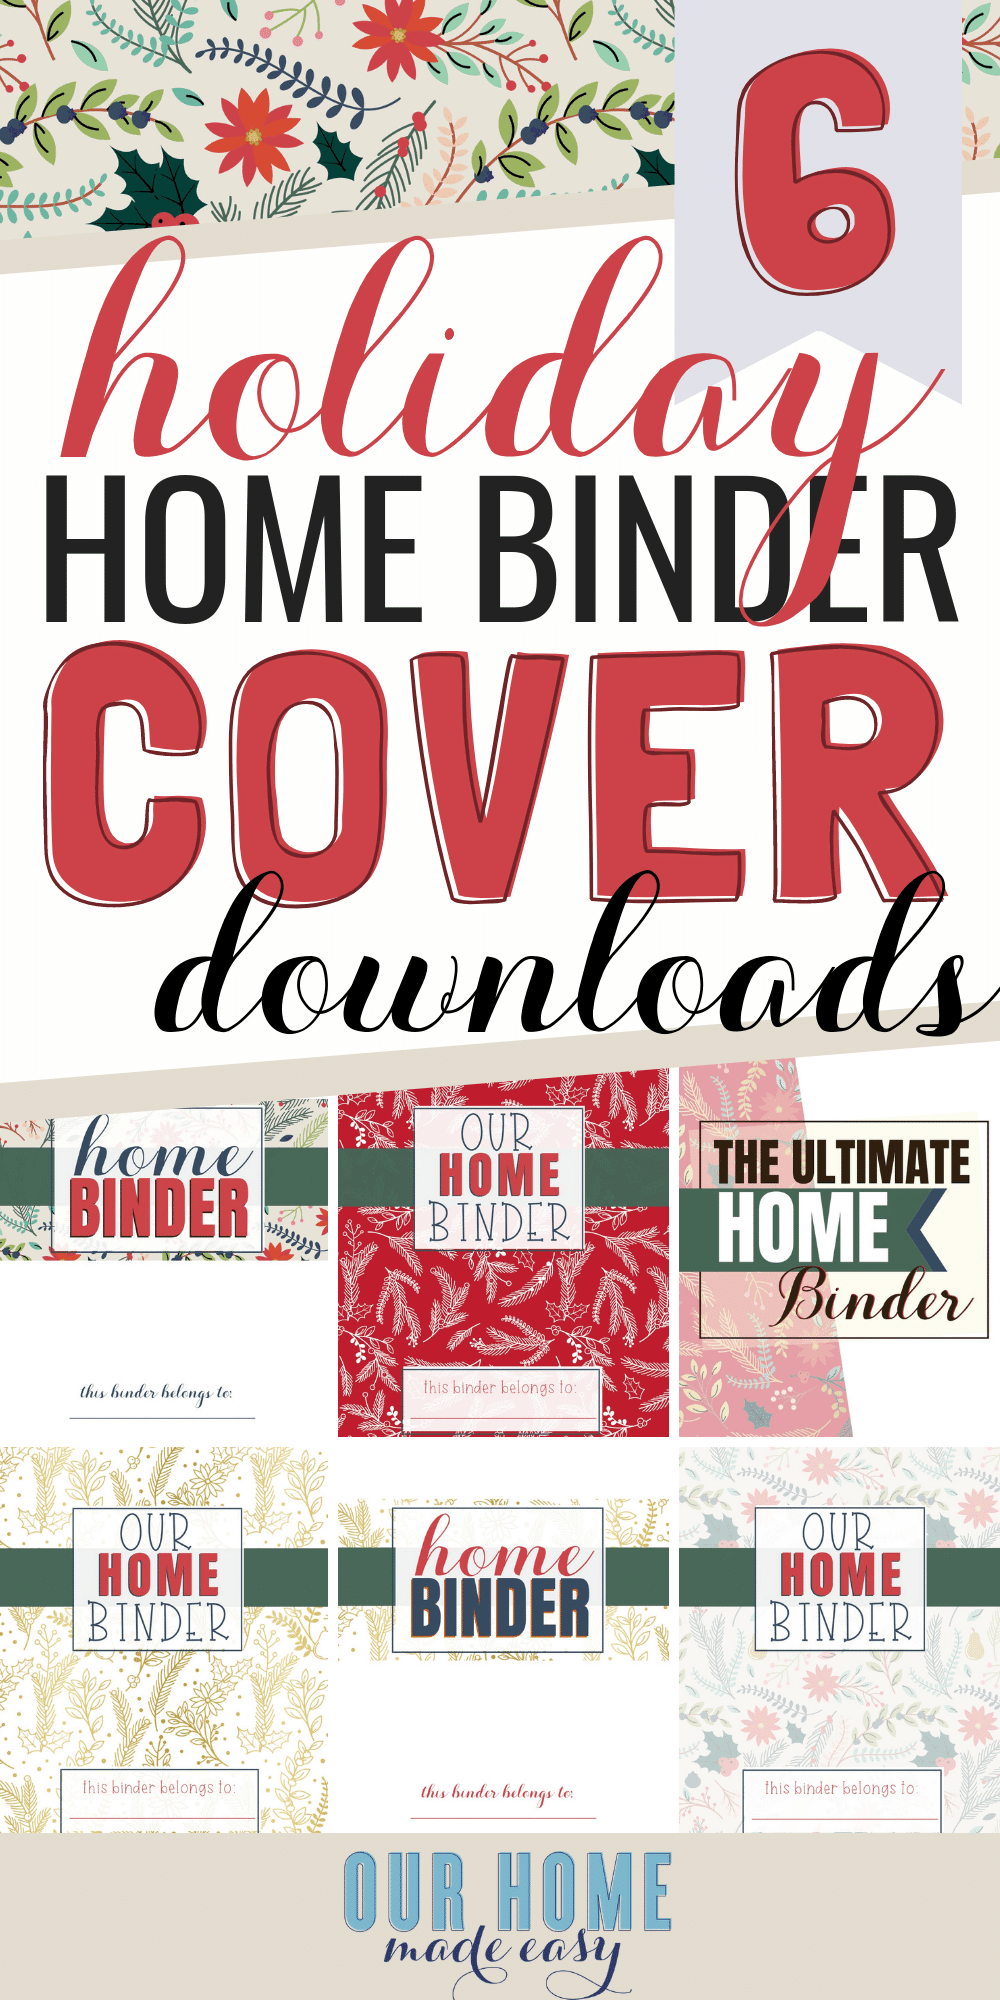 Here are 6 free Christmas & Holiday home binder covers! Print them off and add insta-holiday cheer to your organizing. #organizing #christmas #ourhomemadeeasy